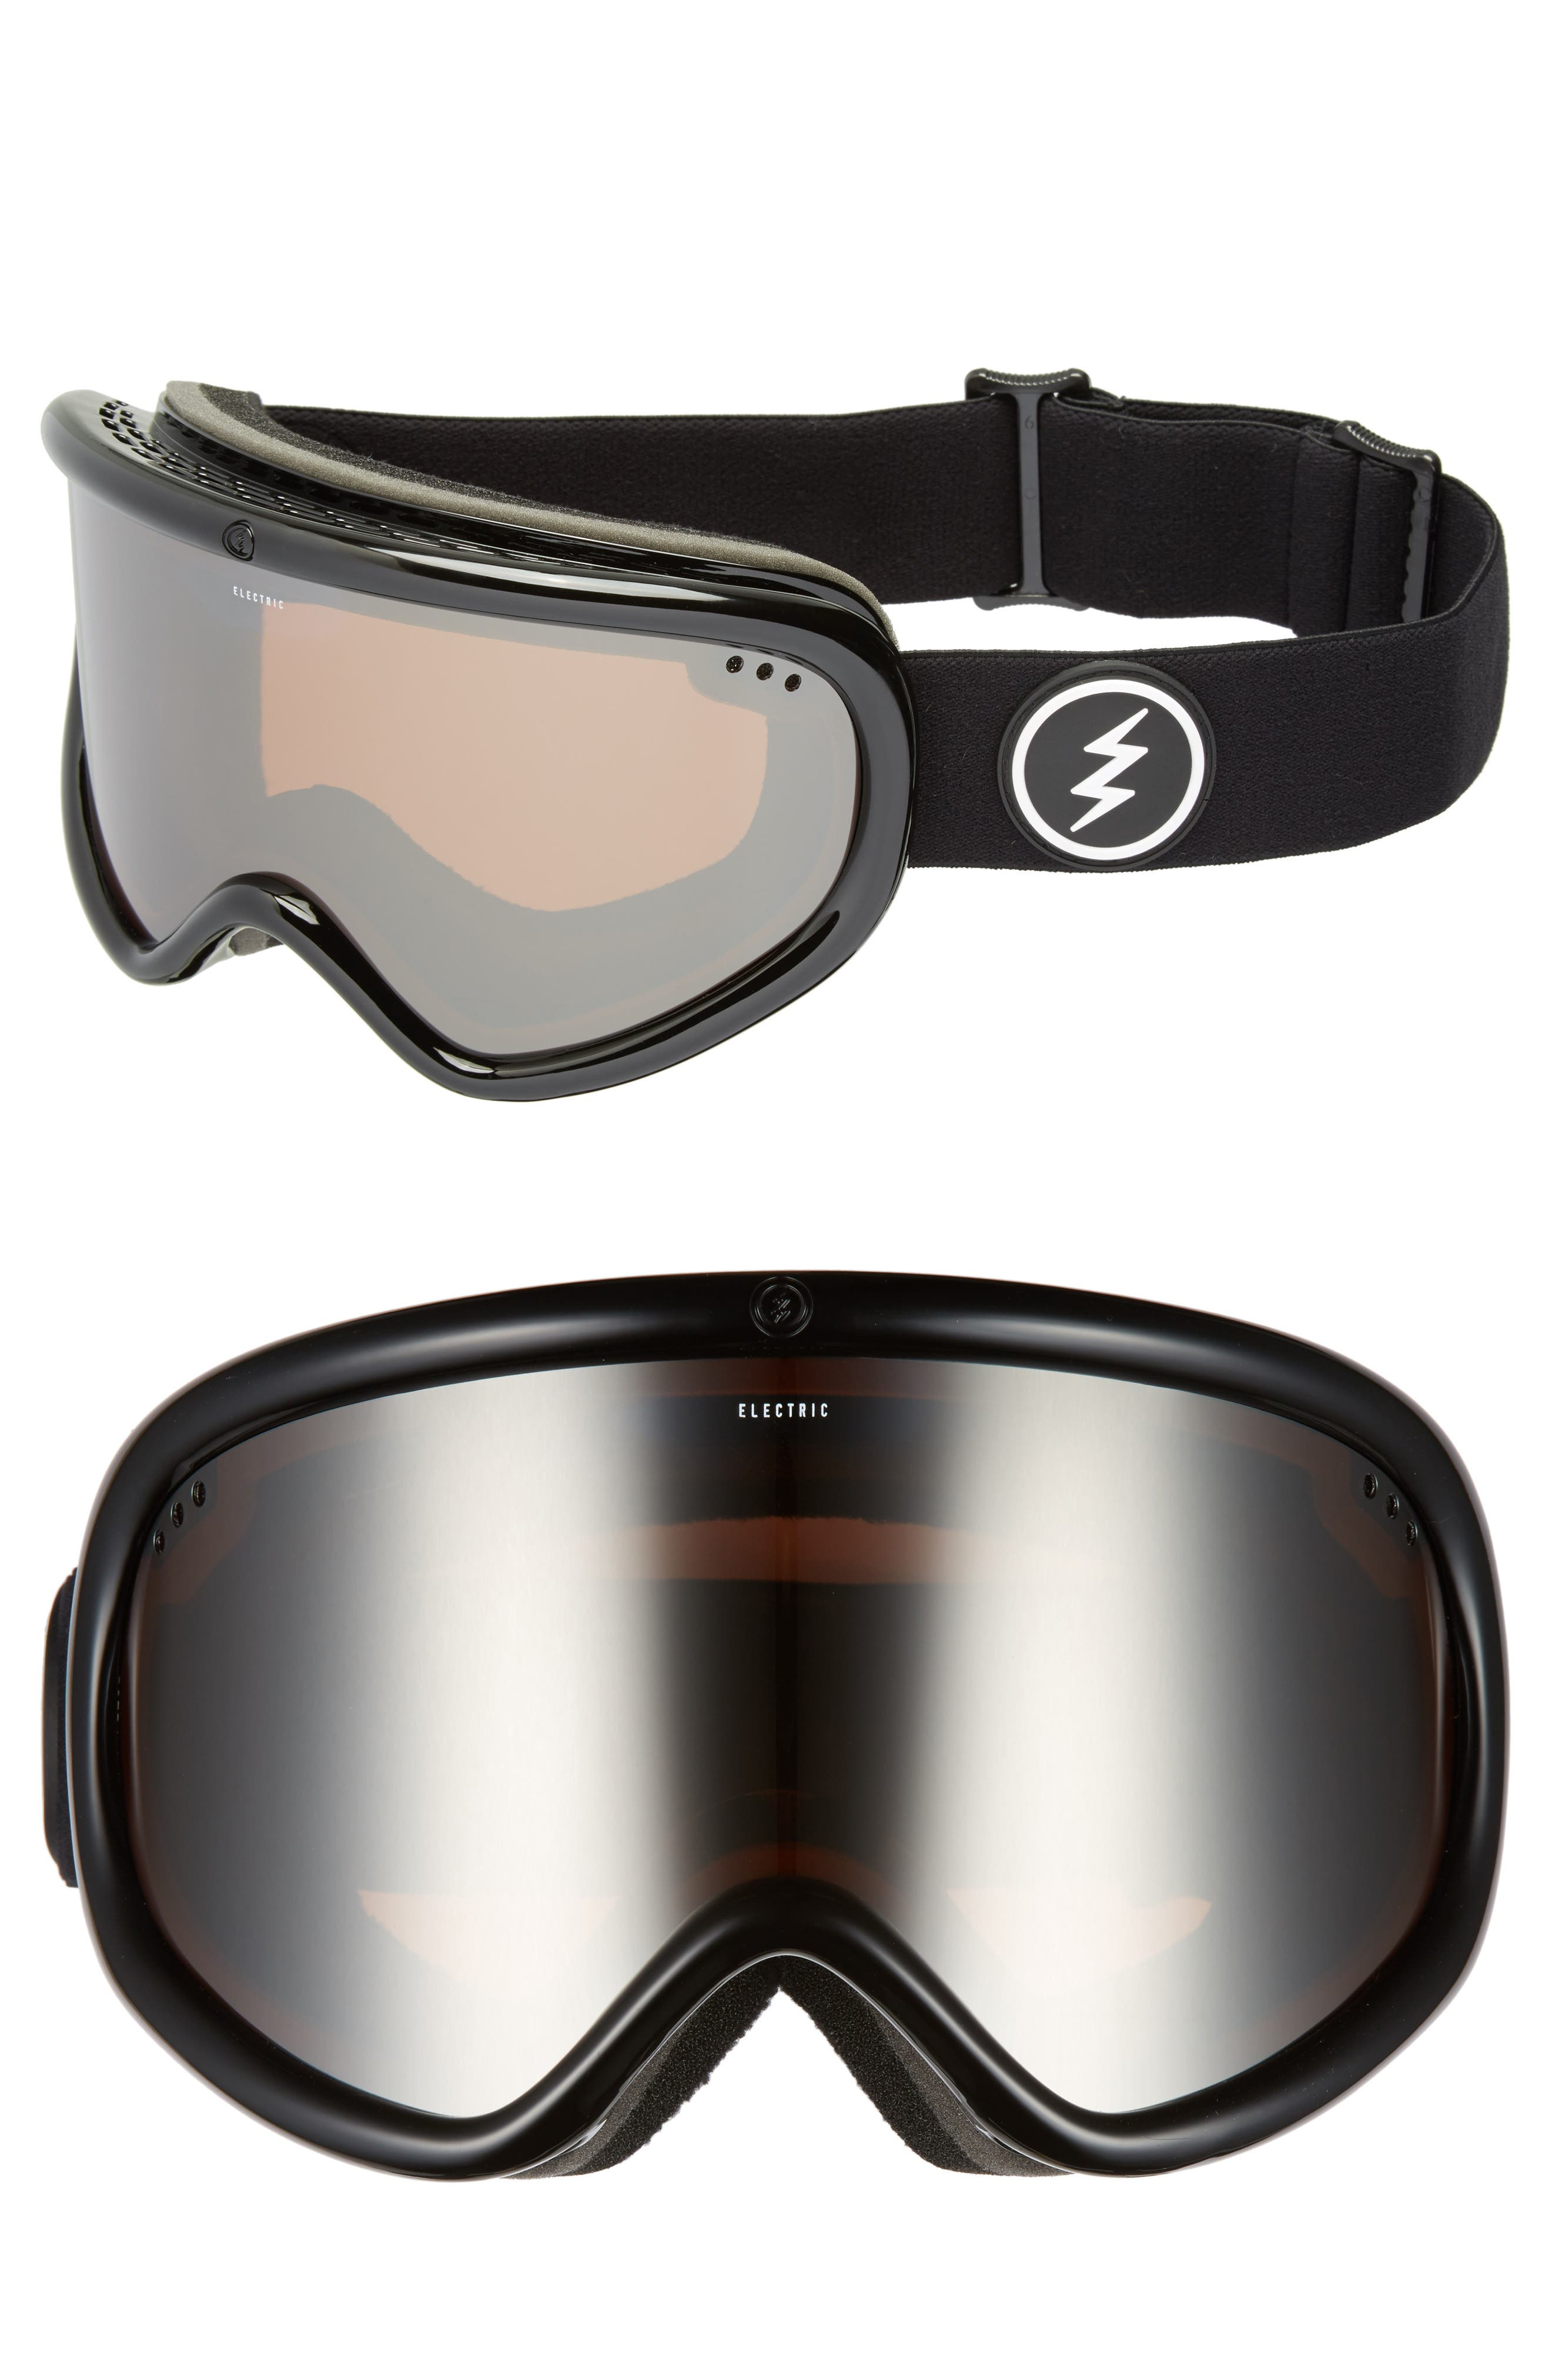 Alternate Image 1 Selected - ELECTRIC Charger XL Snow Goggles